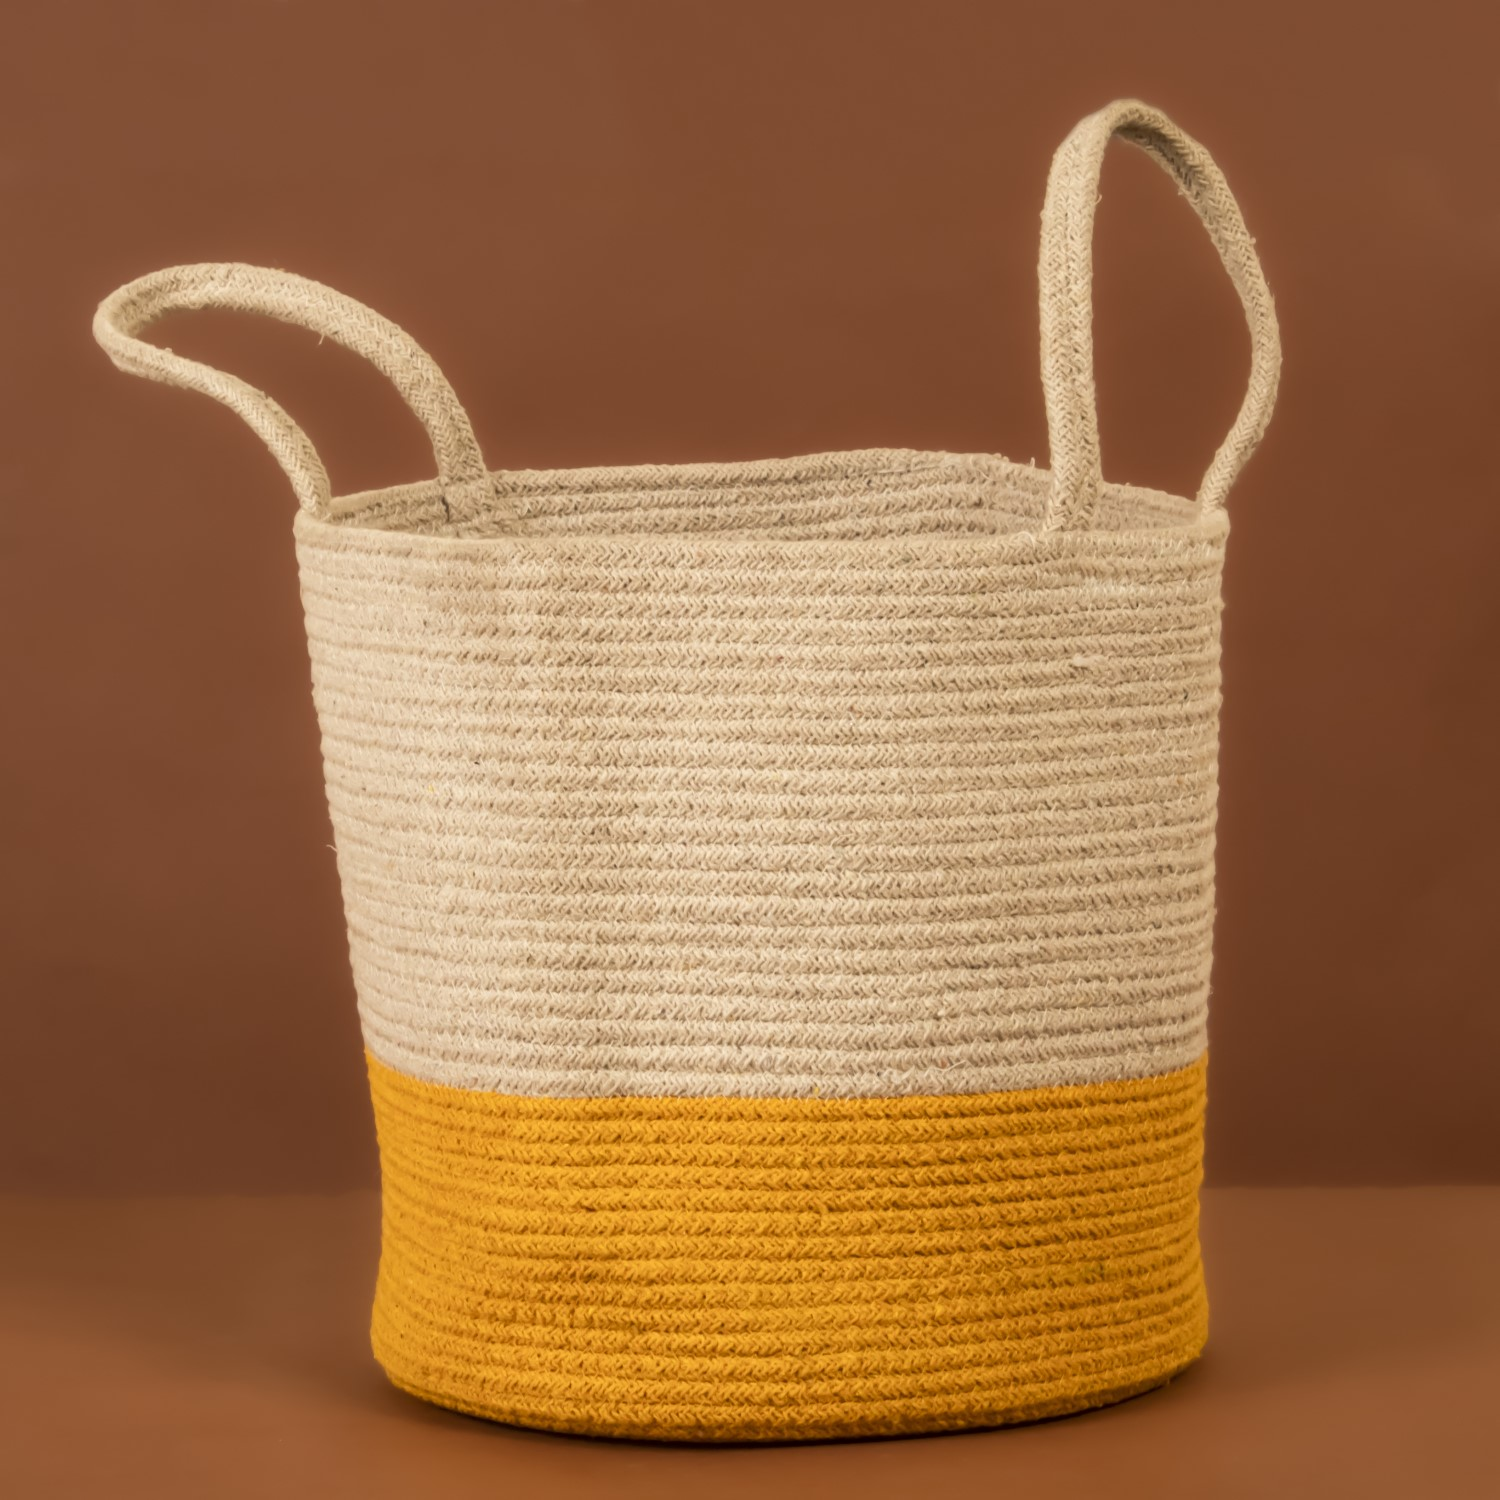 """""""A great organizer and planter, this chic multi-purpose handwoven jute & cotton blend basket is a must for any home. Excellent as a toy organizer as well as a laundry bag, it's sure to enhance your spaces while also being very useful! Size: 40 x 30 cm (approx)"""""""